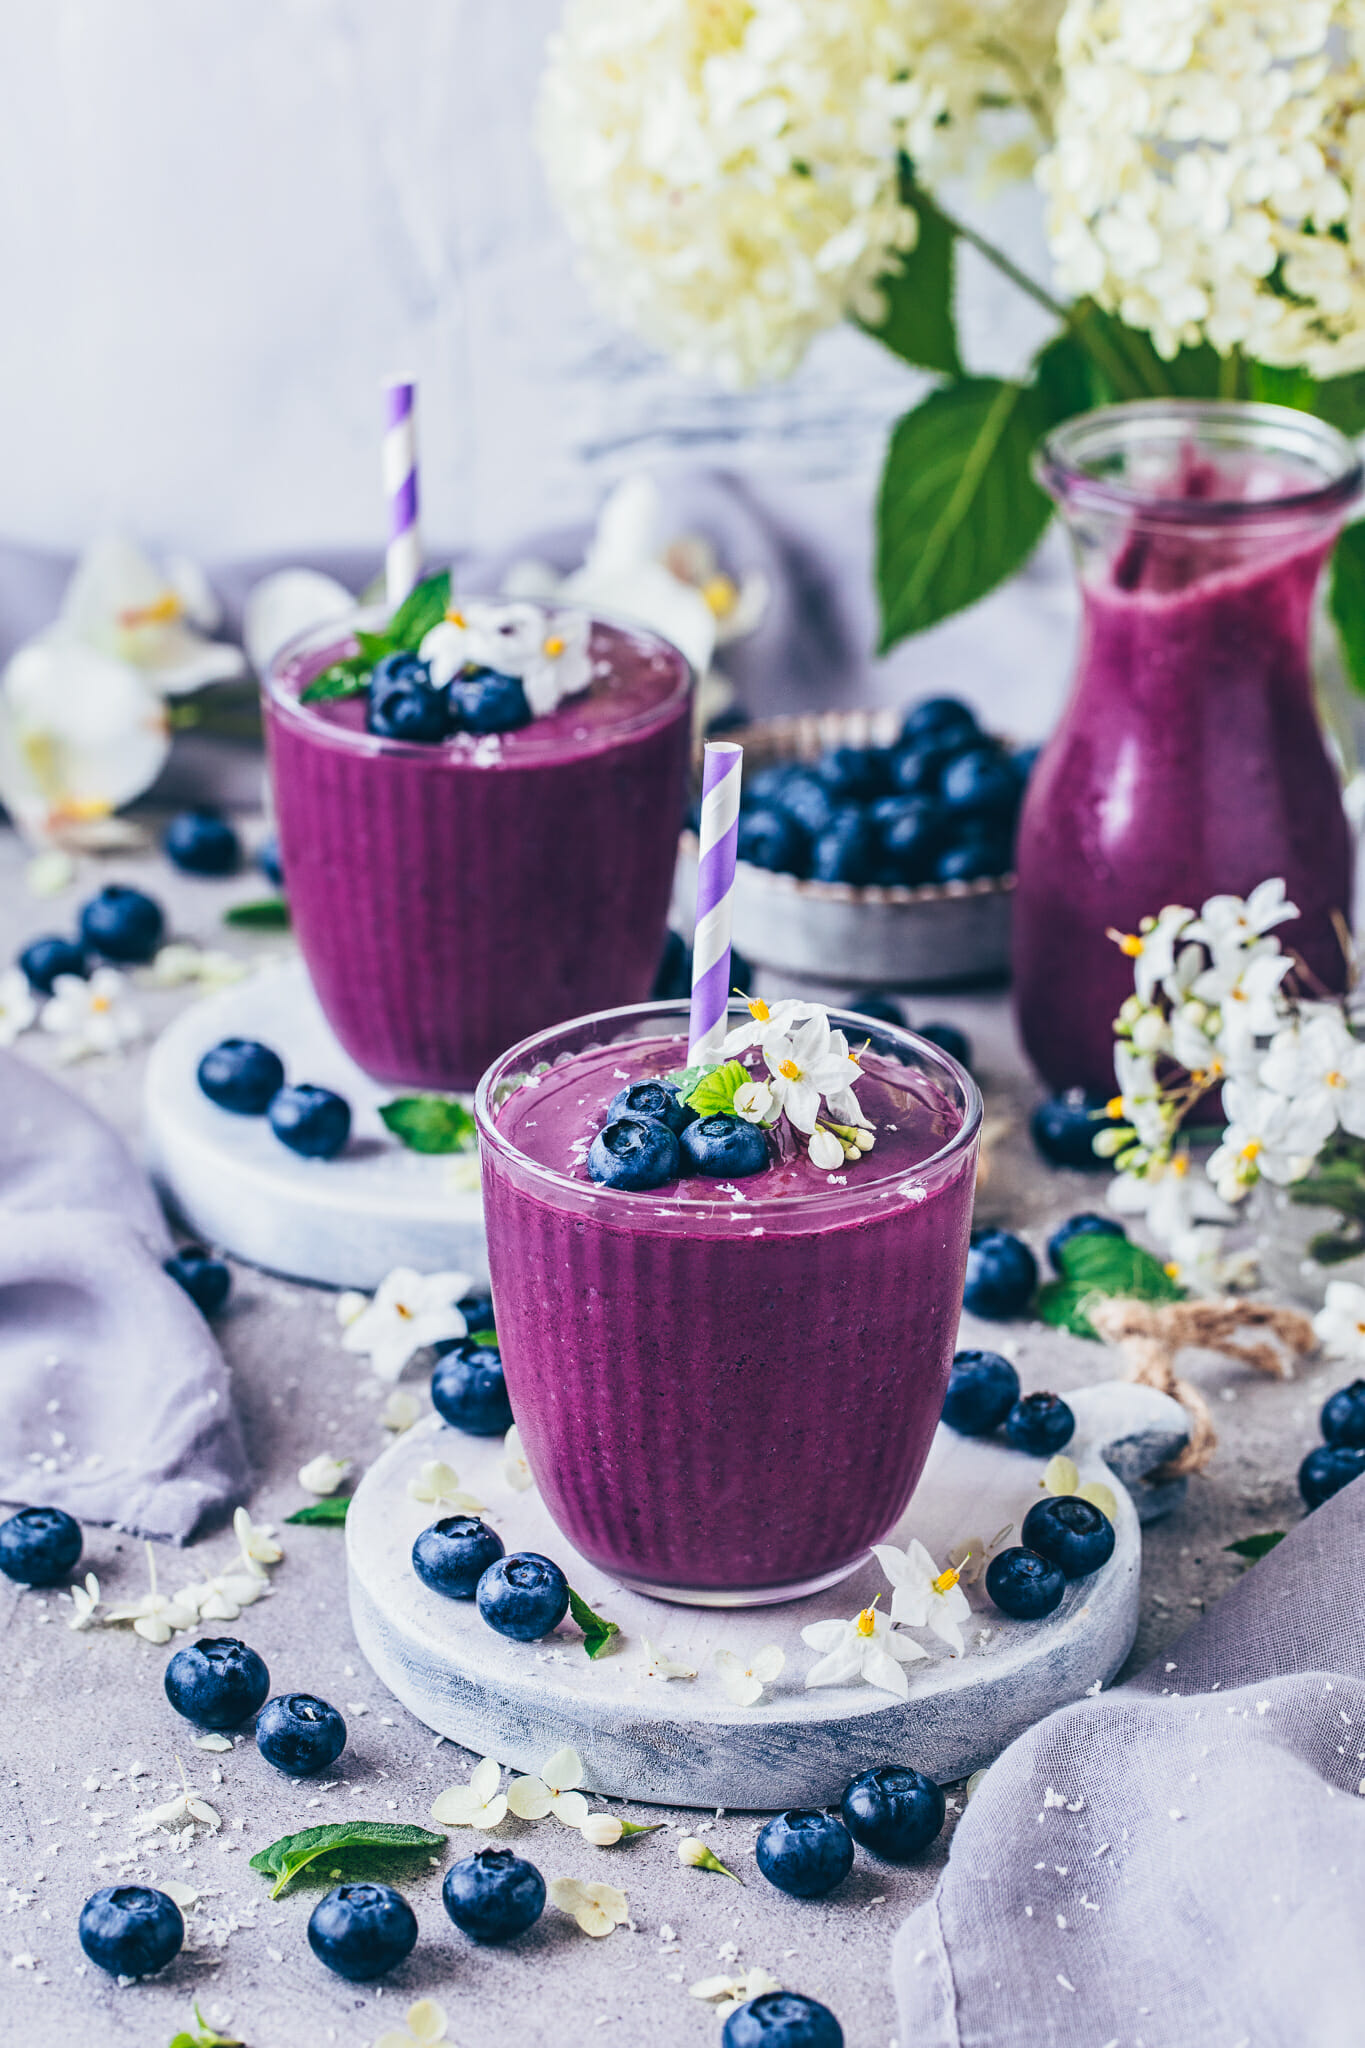 Blueberry Smoothie (Food photography)